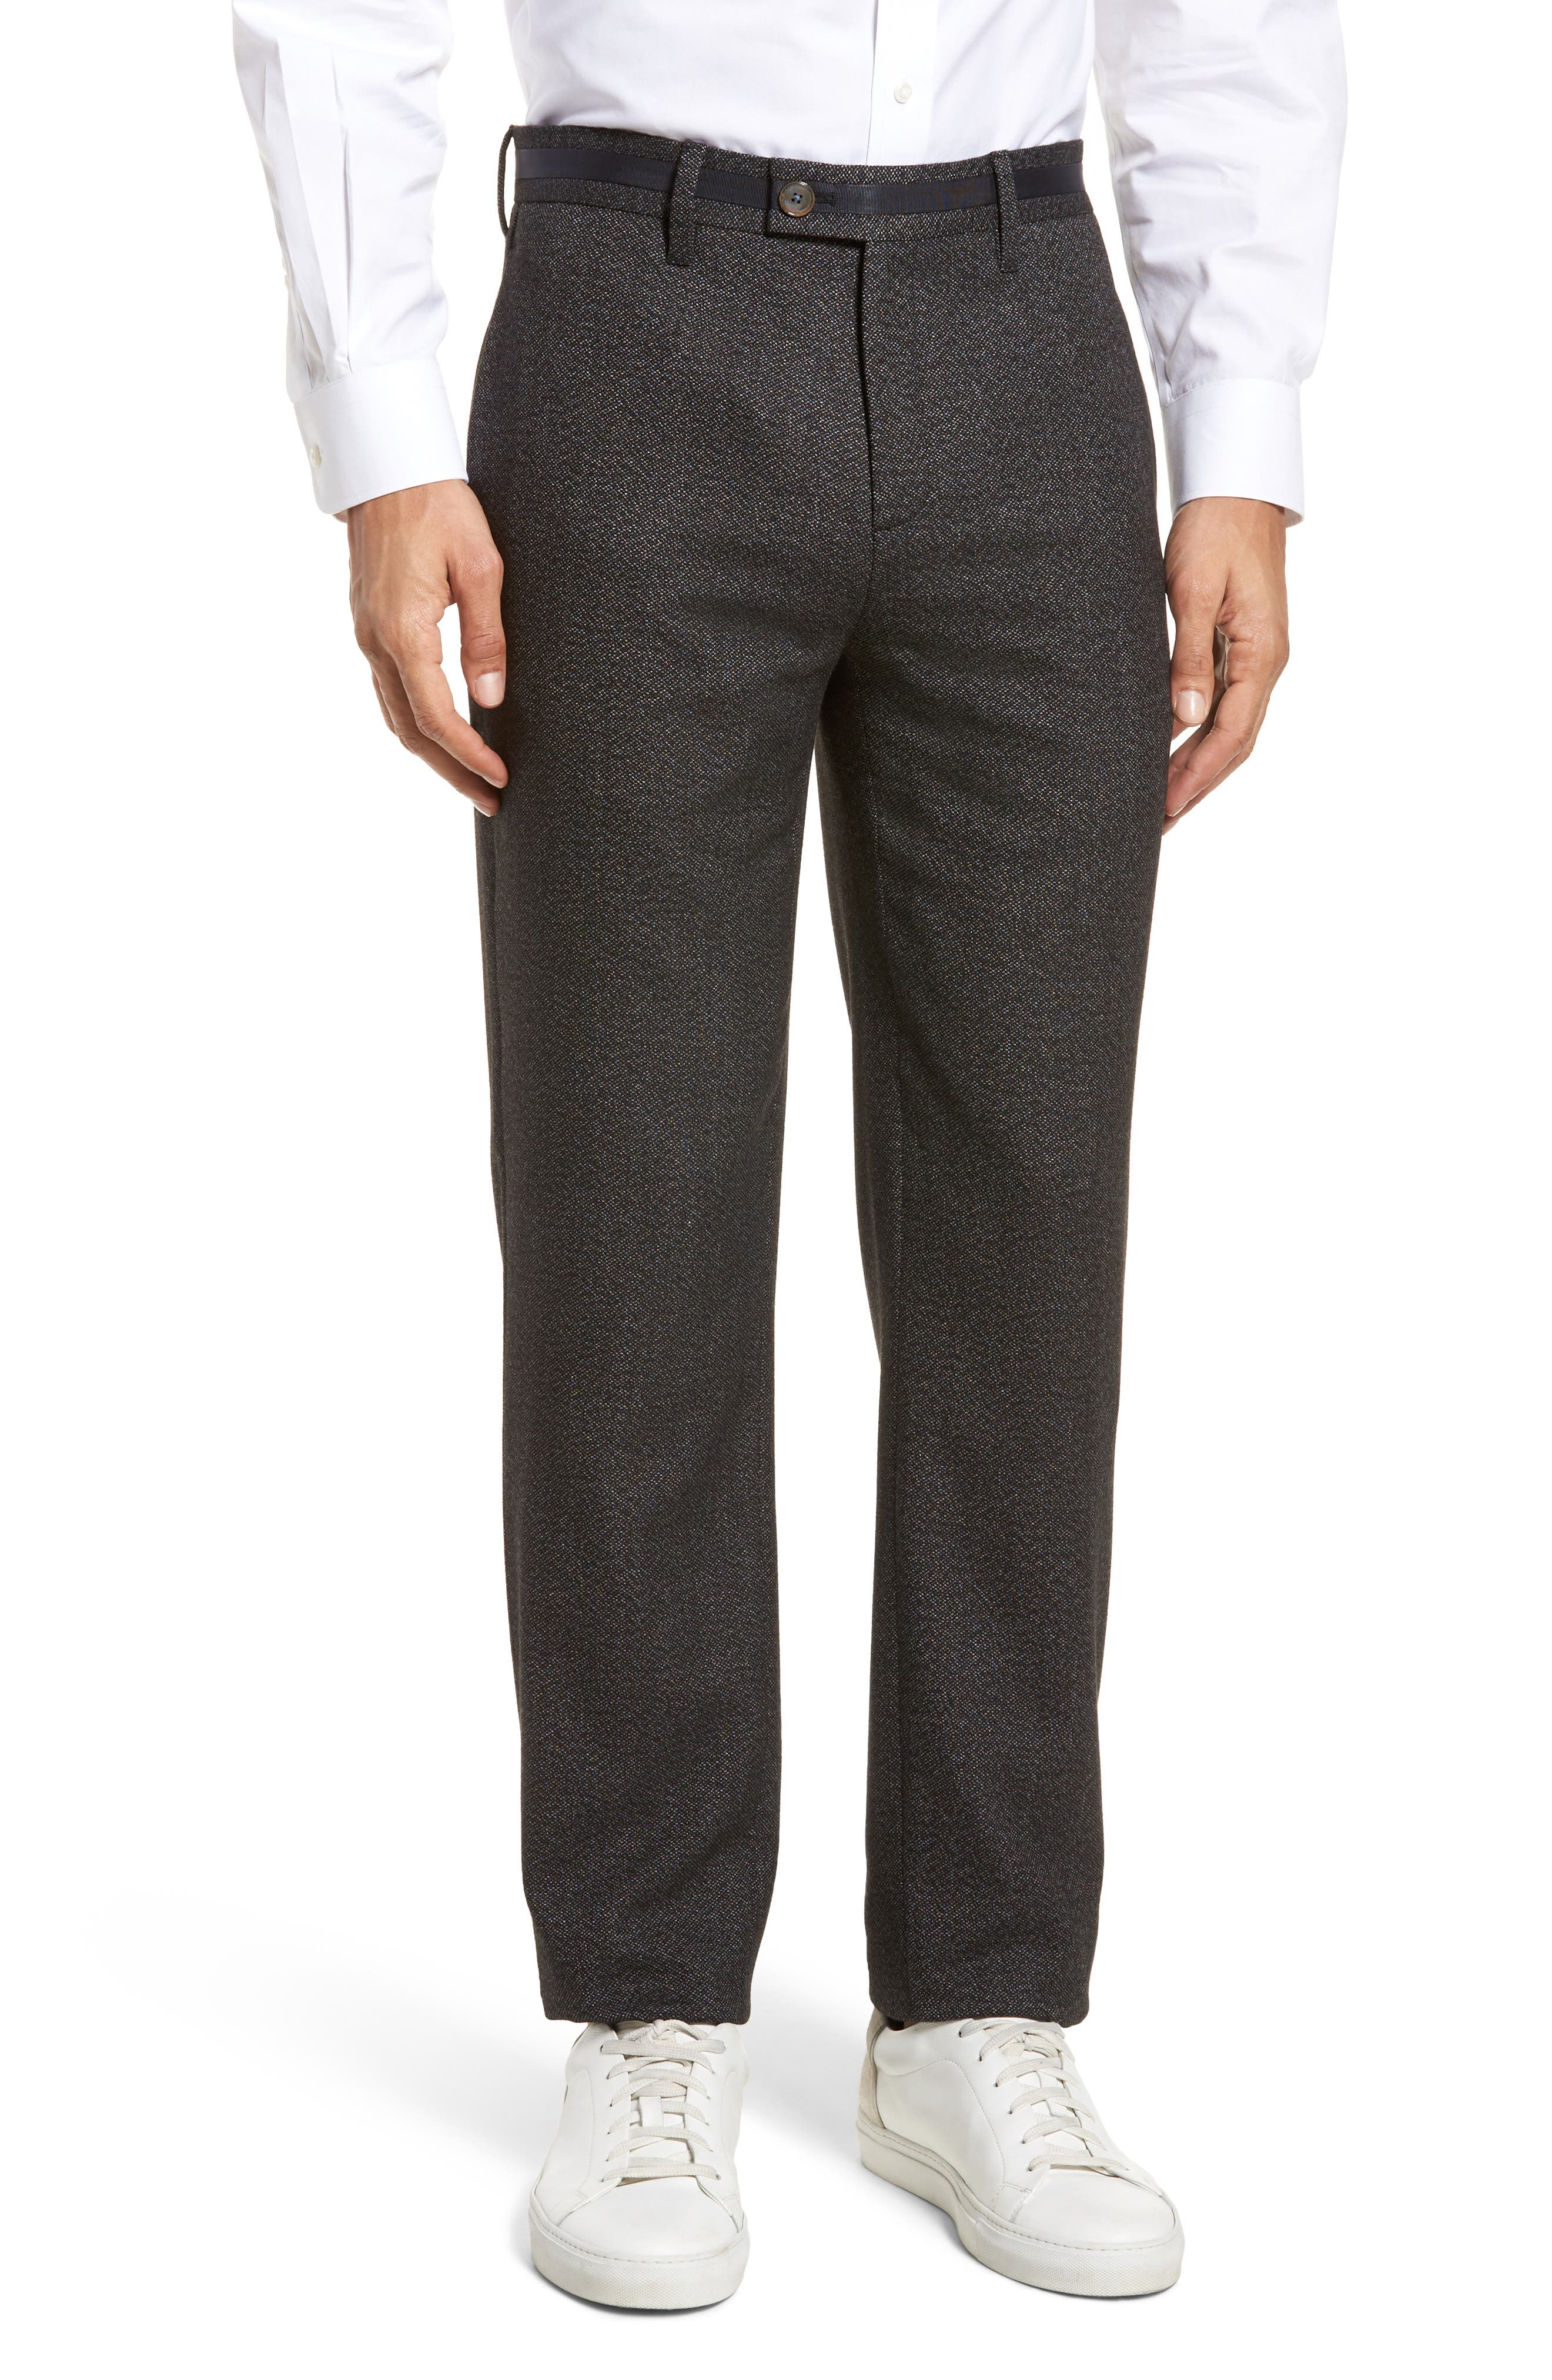 Bektrot Flat Front Stretch Solid Pants,                         Main,                         color, Charcoal